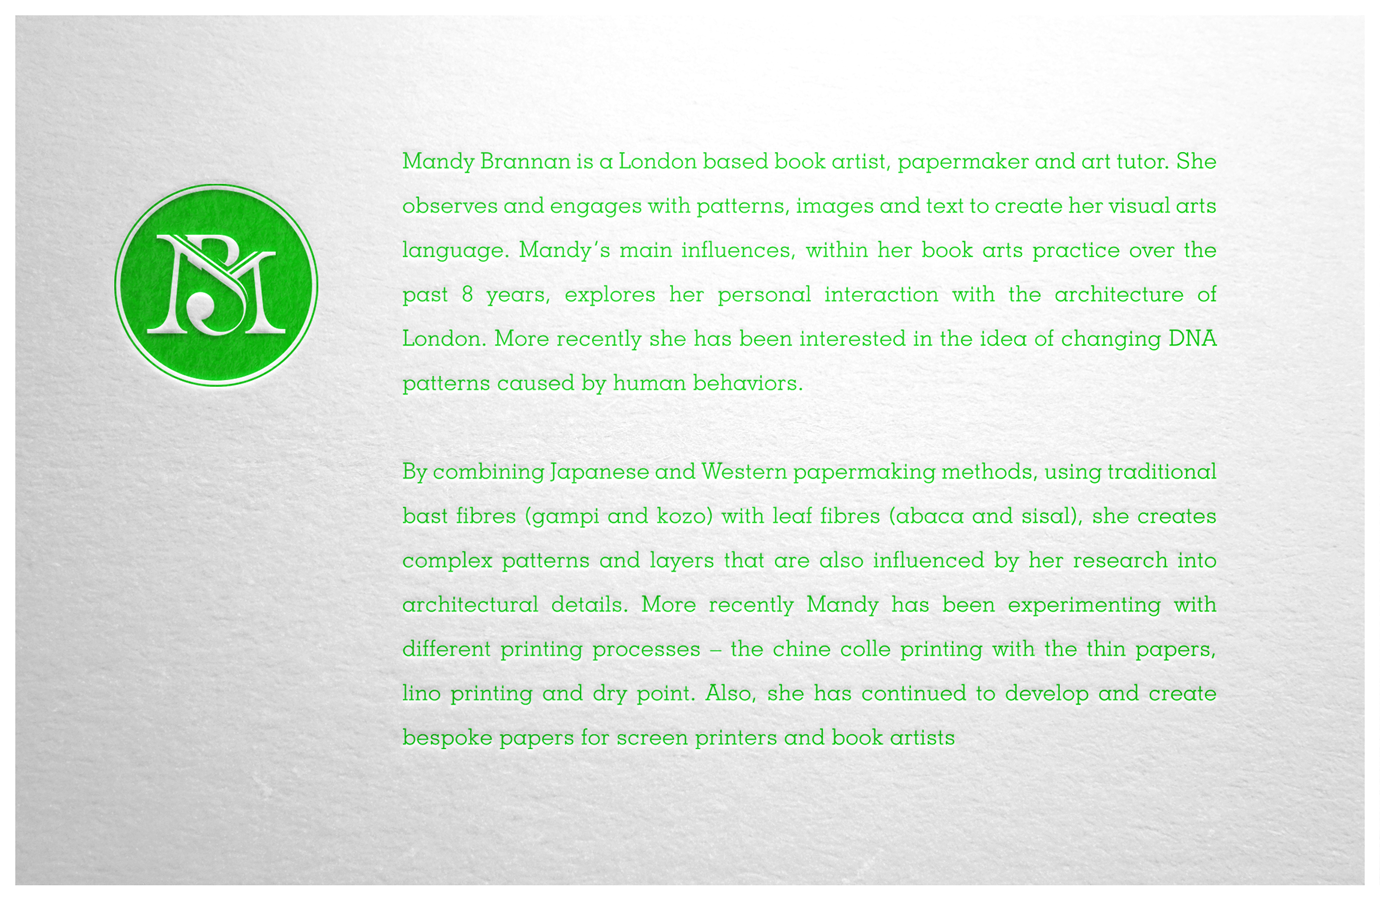 Info card about book artist and educational lecturer, Mandy Brannan.